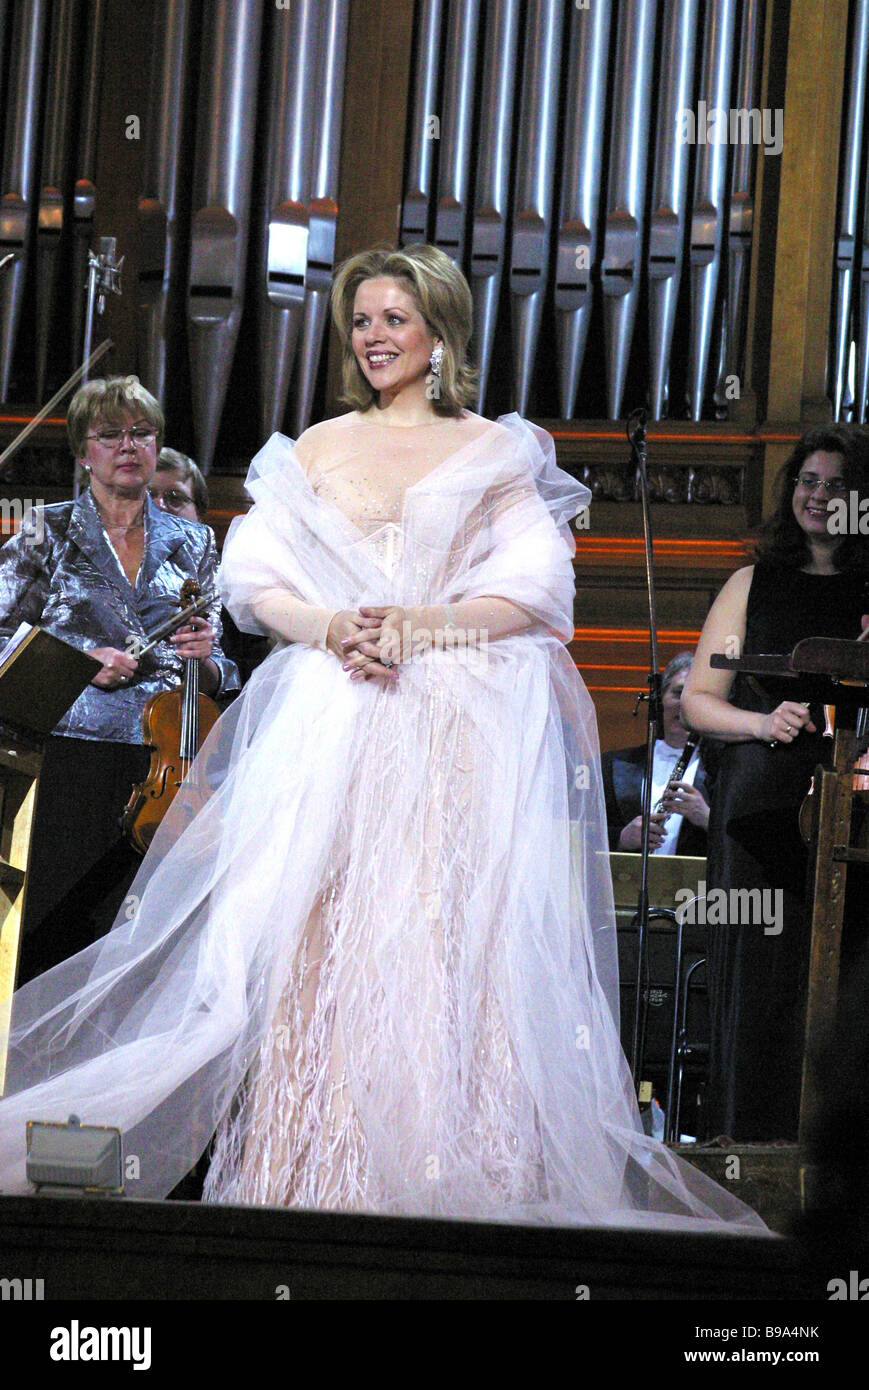 U S singer Renee Fleming soprano at a concert in the Grand Hall of the Moscow Conservatory - Stock Image